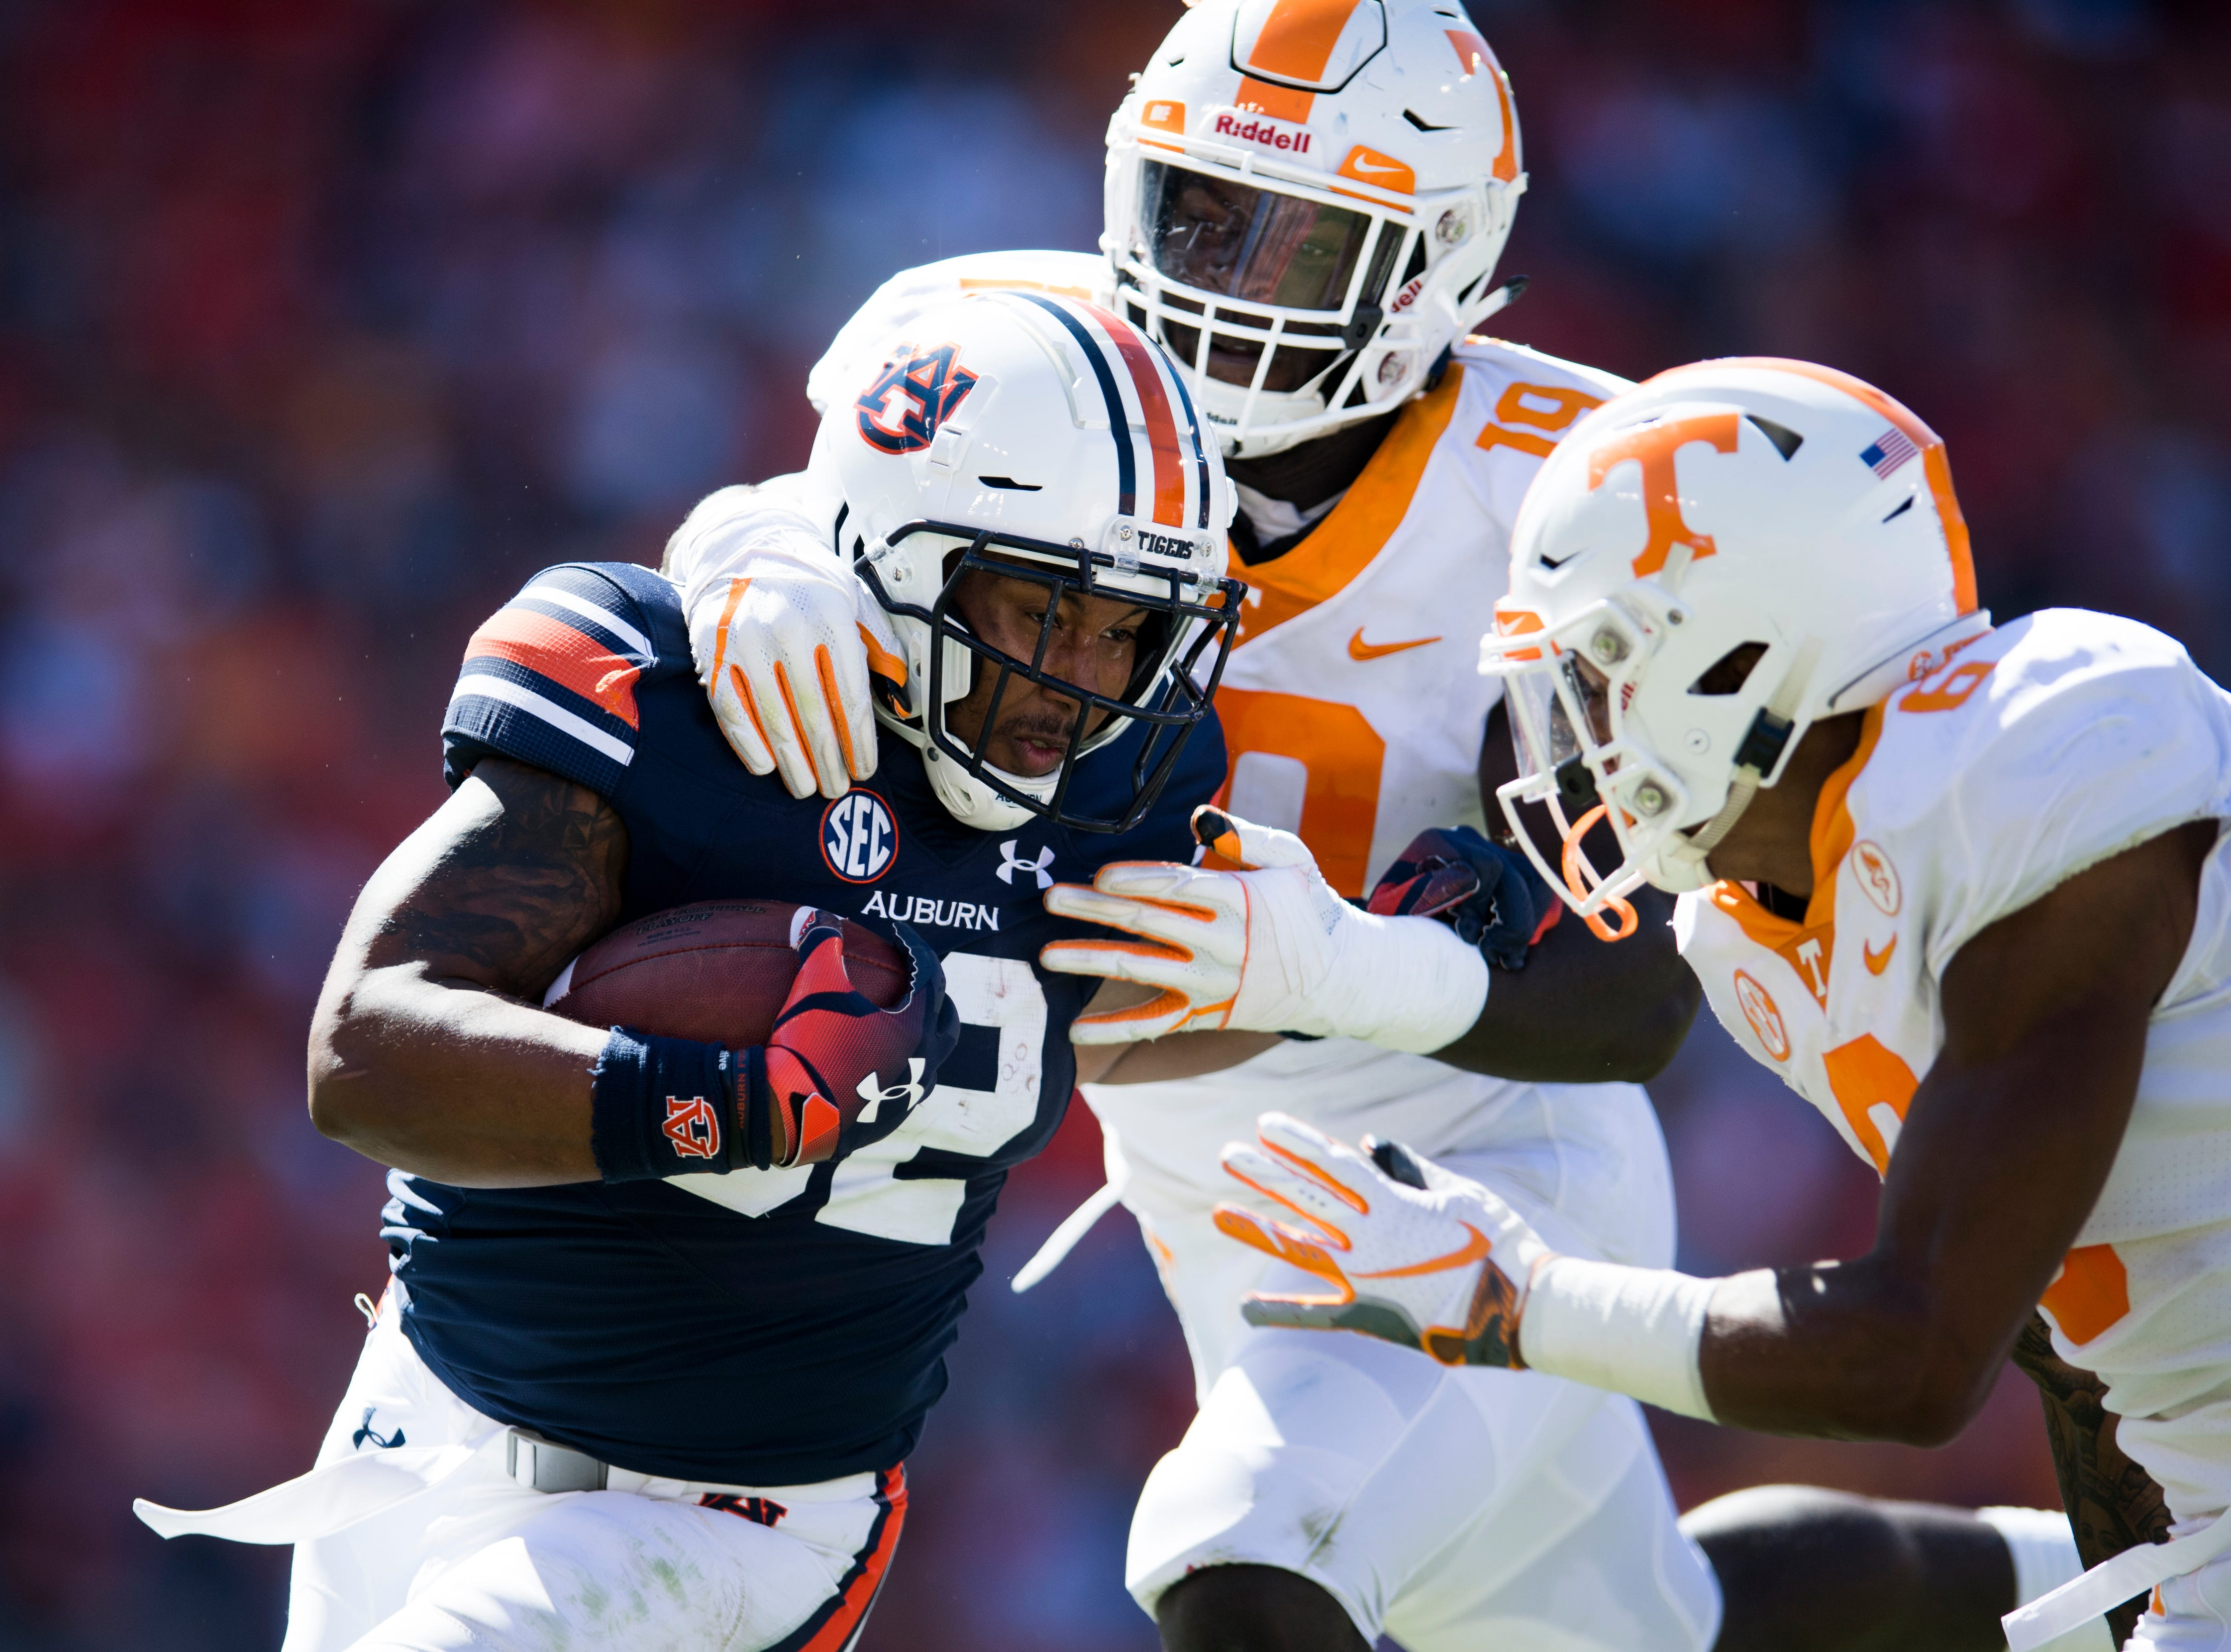 Auburn running back Malik Miller (32) is attacked by Tennessee linebacker Darrell Taylor (19) and Tennessee defensive back/wide receiver Alontae Taylor (6) during a game between Tennessee and Auburn at Jordan-Hare Stadium in Auburn, Alabama on Saturday, October 13, 2018.